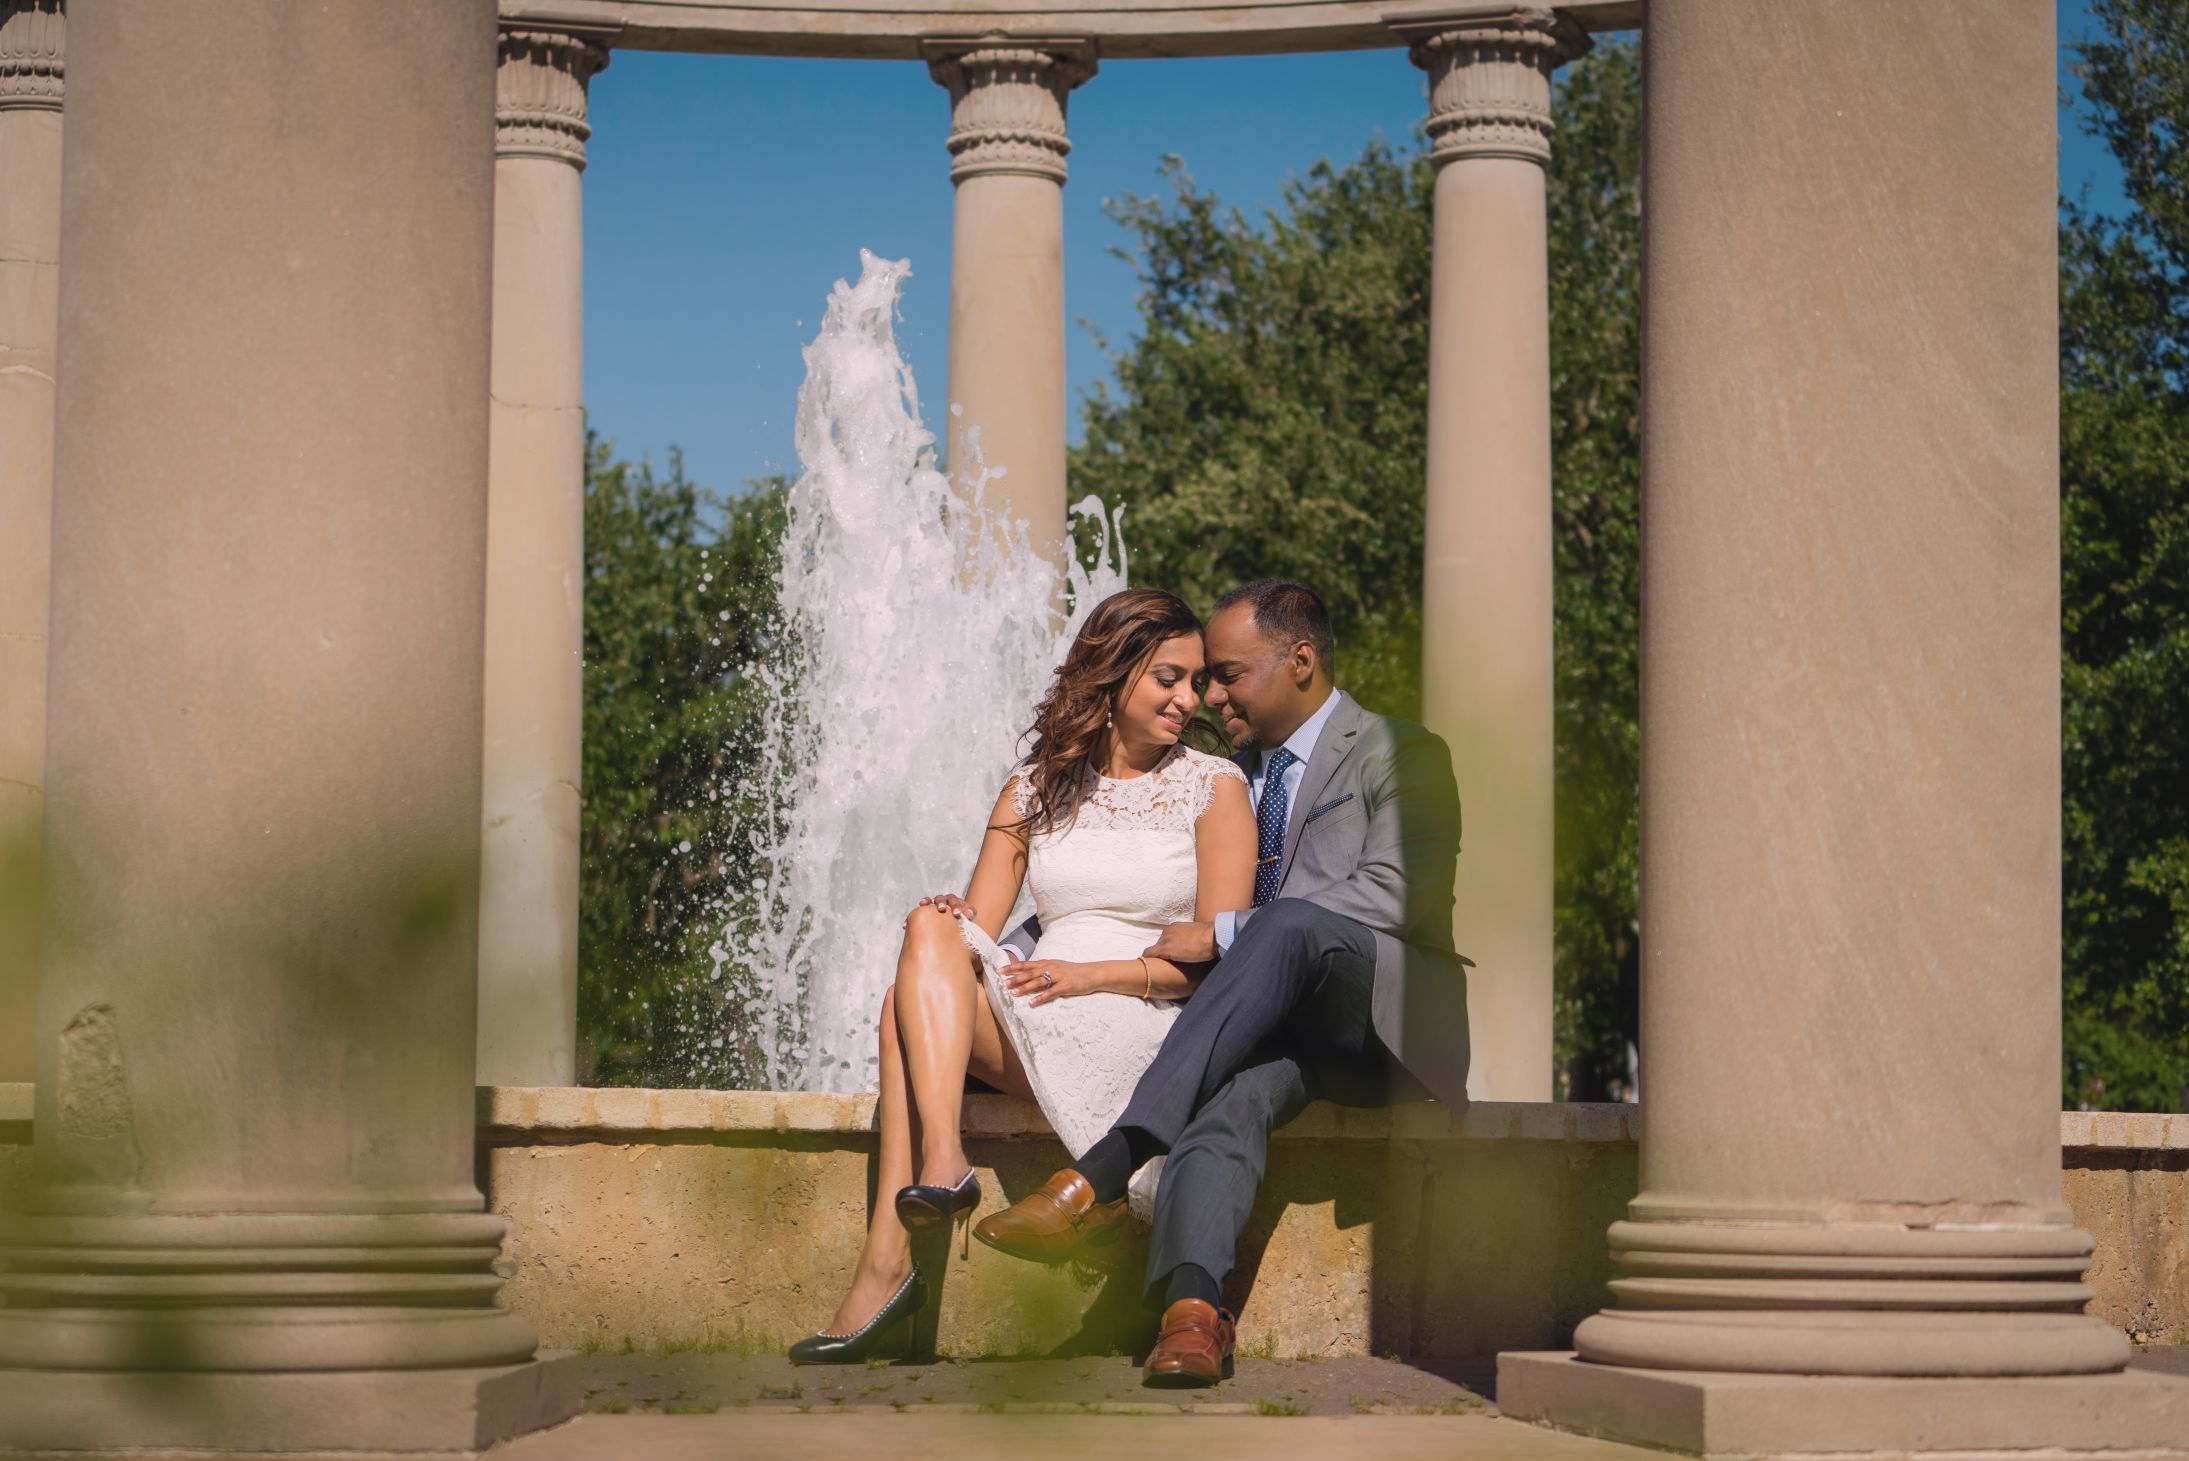 Couple photoshoot outdoor with water fountain in the back